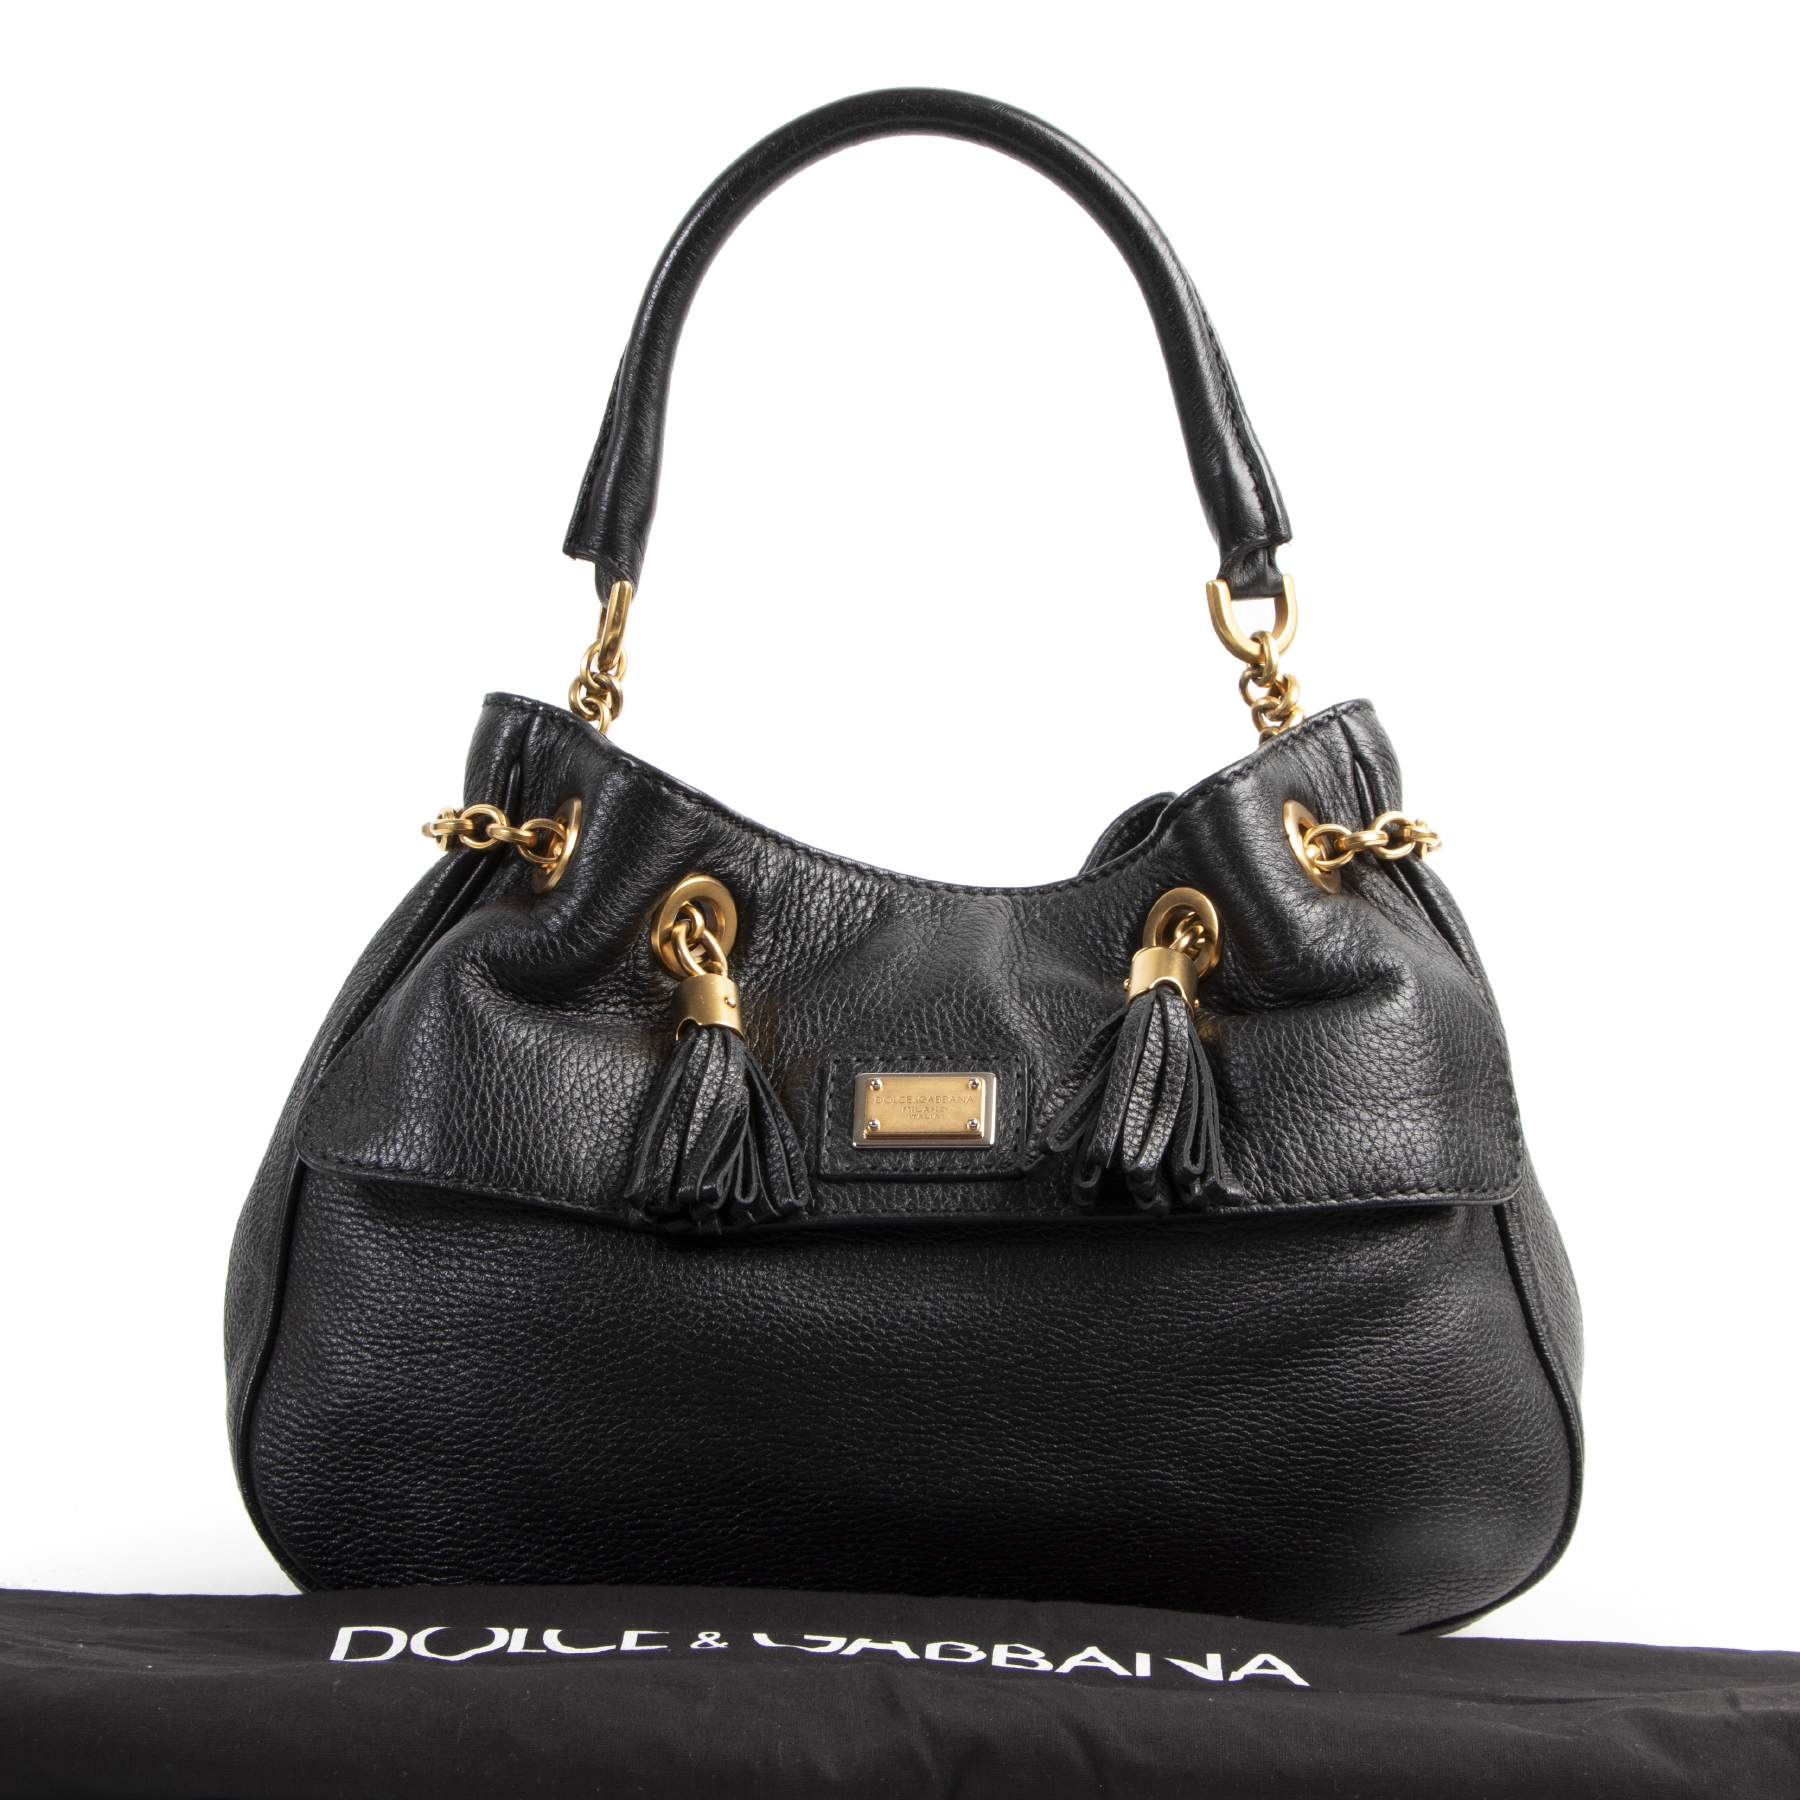 Authentic secondhand Dolce & Gabbana Black Shoulder Bag designer bags fashion luxury vintage webshop safe secure online shopping